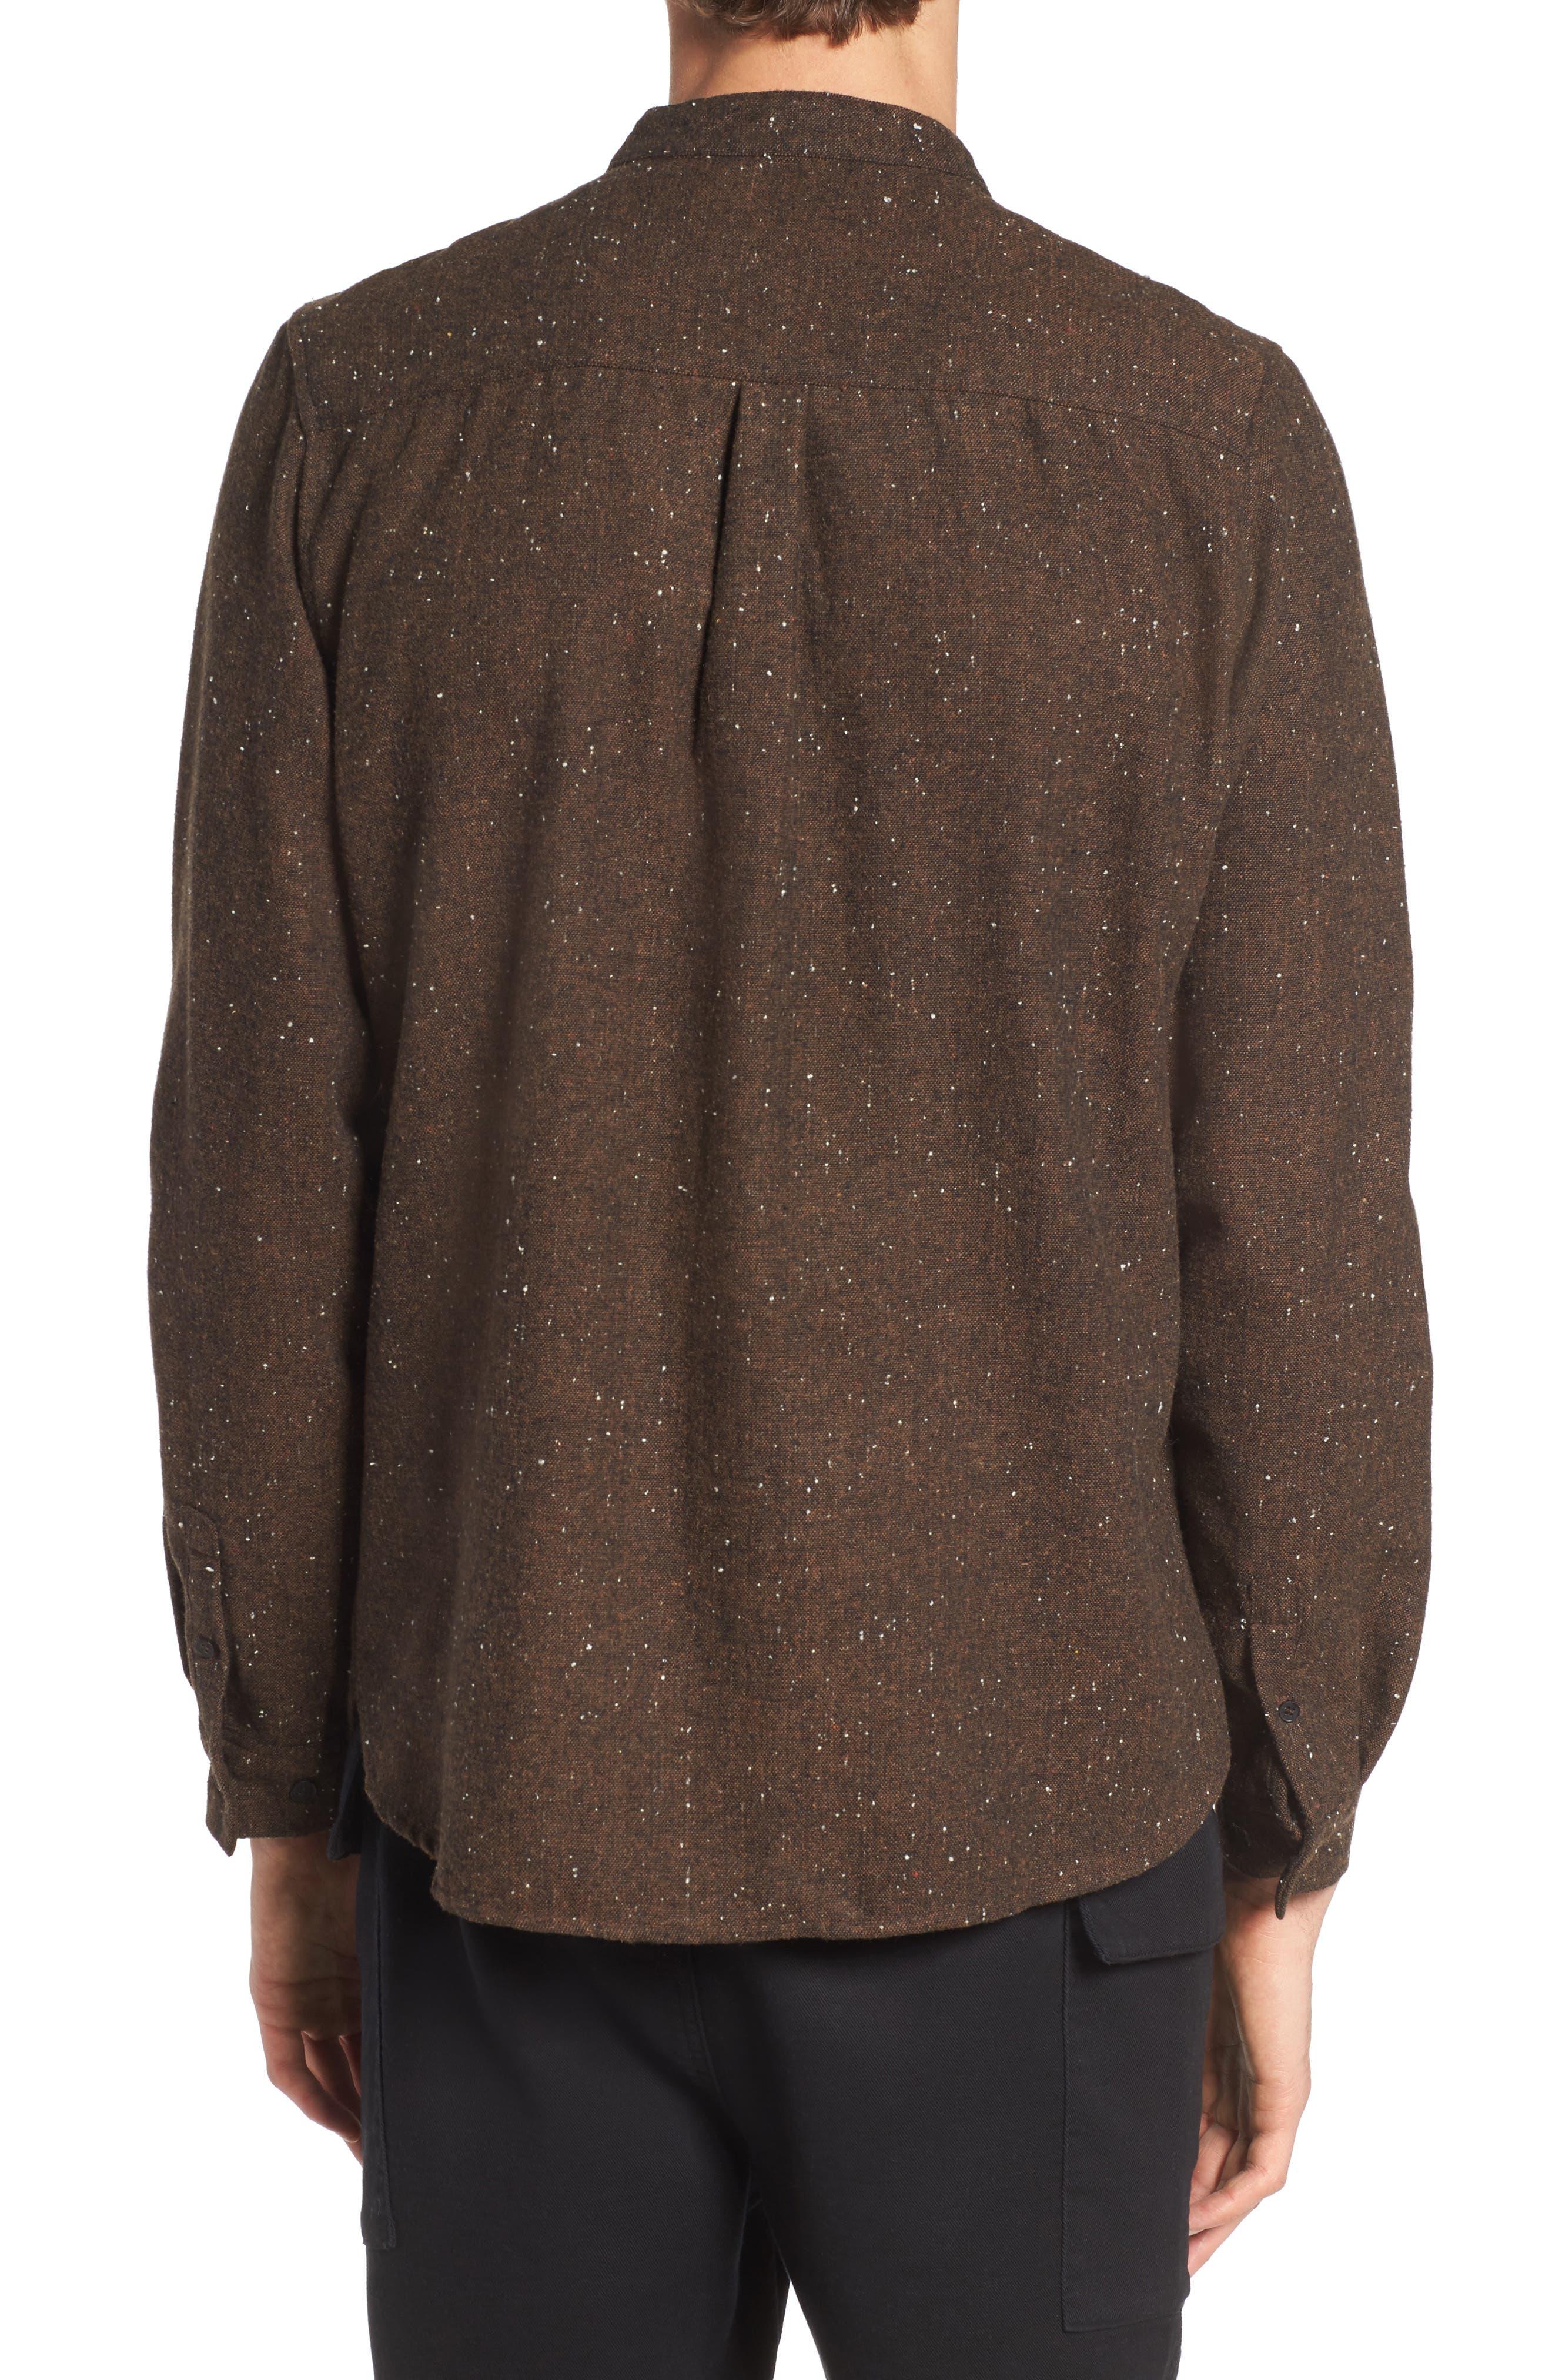 Alford Nep Shirt,                             Alternate thumbnail 2, color,                             Brown